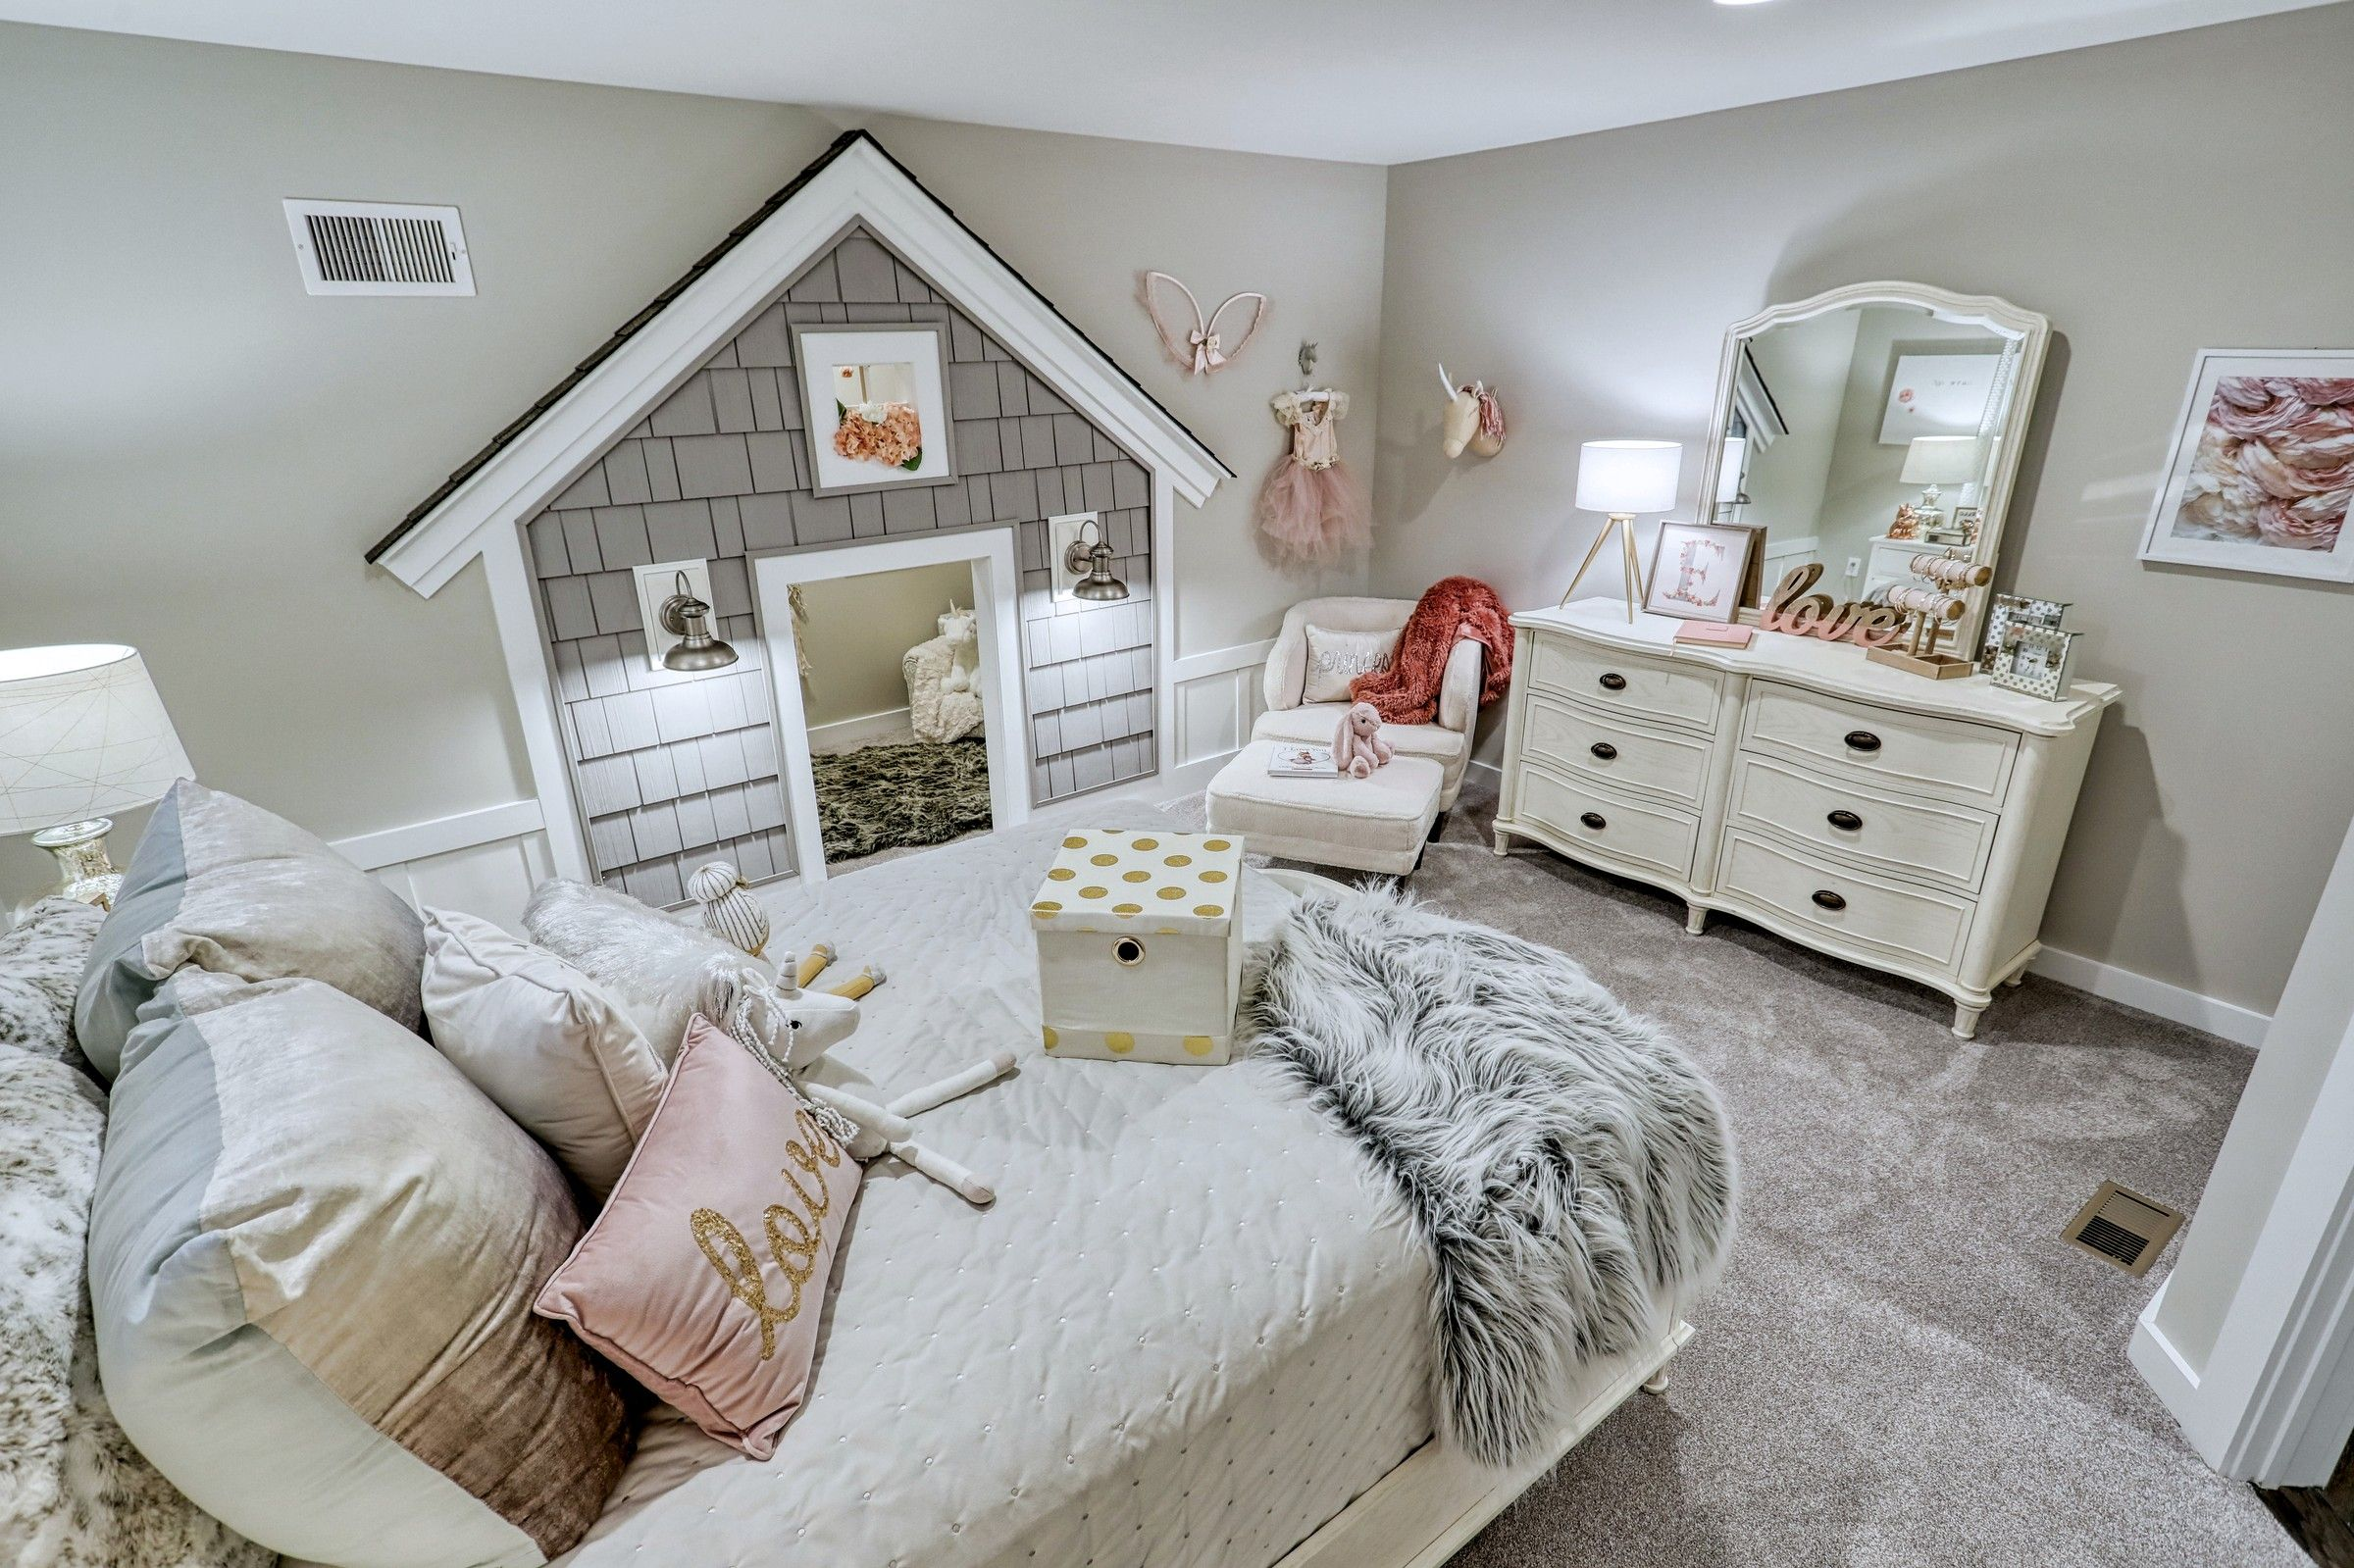 Bedroom featured in the Covington Heritage By Keystone Custom Homes in Baltimore, MD